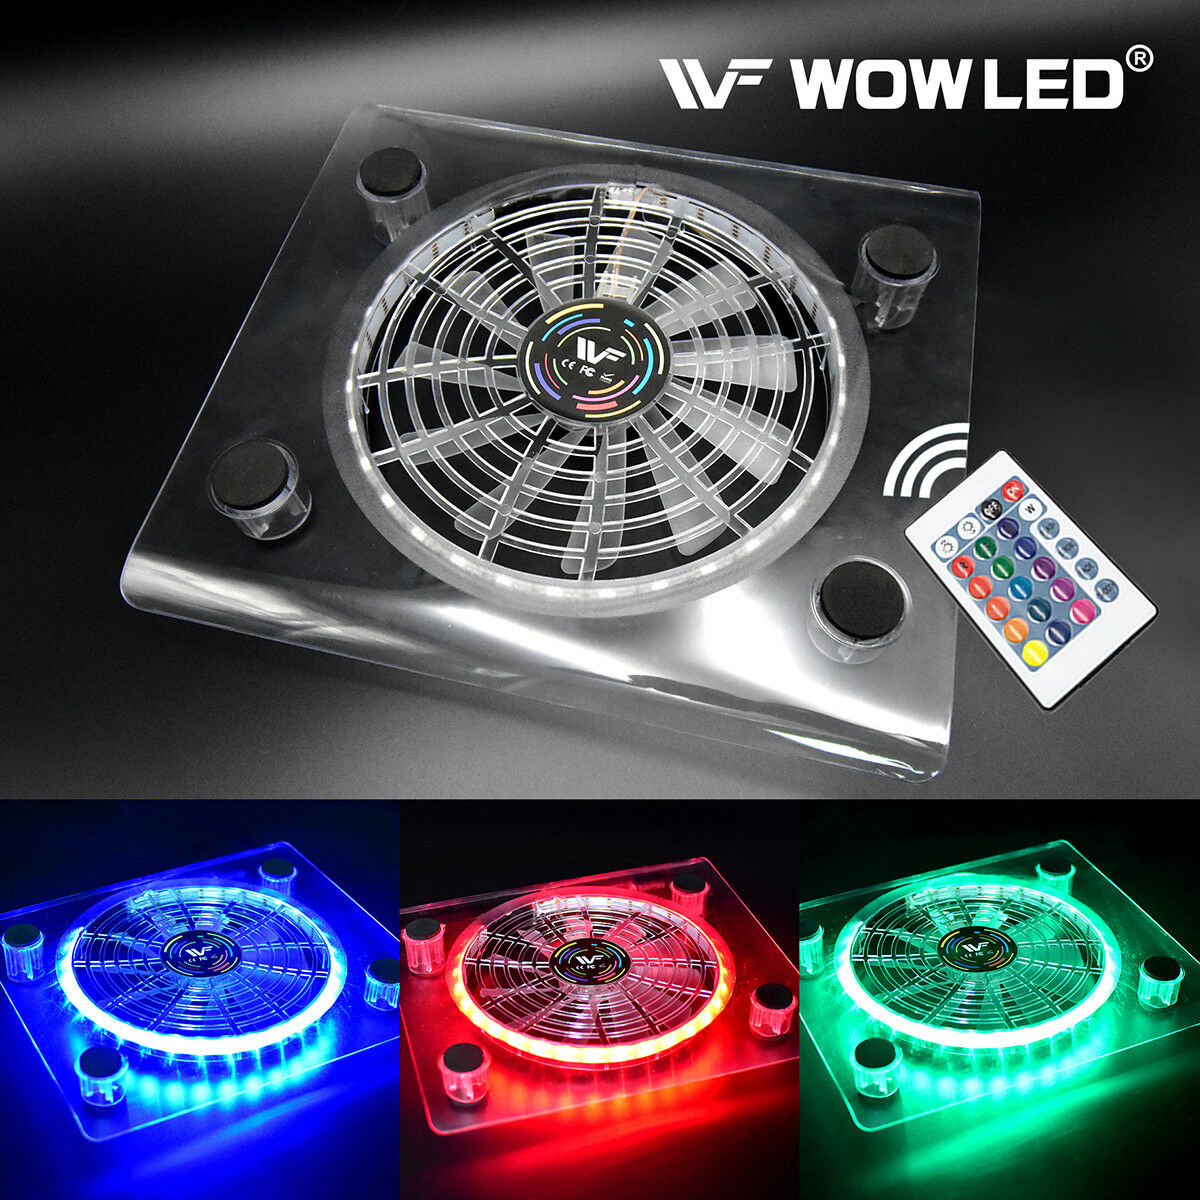 Usb Rgb Led Cooler Cooling Fan Pad Stand W Wireless Remote 1 Of 6free Shipping